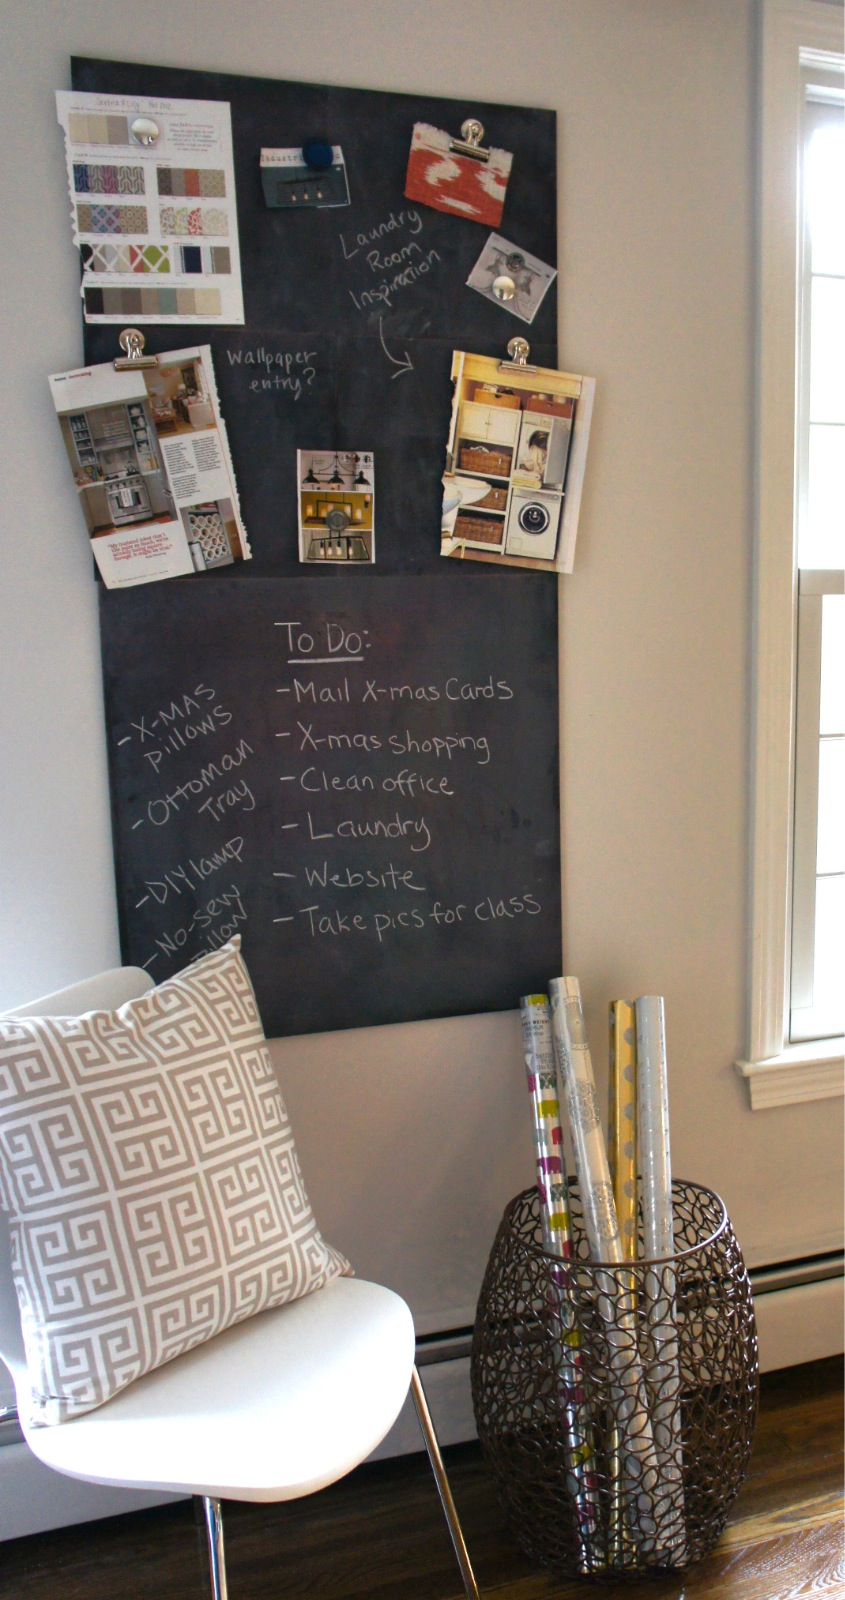 the top half of the chalkboard is magnetic and i can use it to post magazine pictures and notes and the bottom half i can use for my todo list